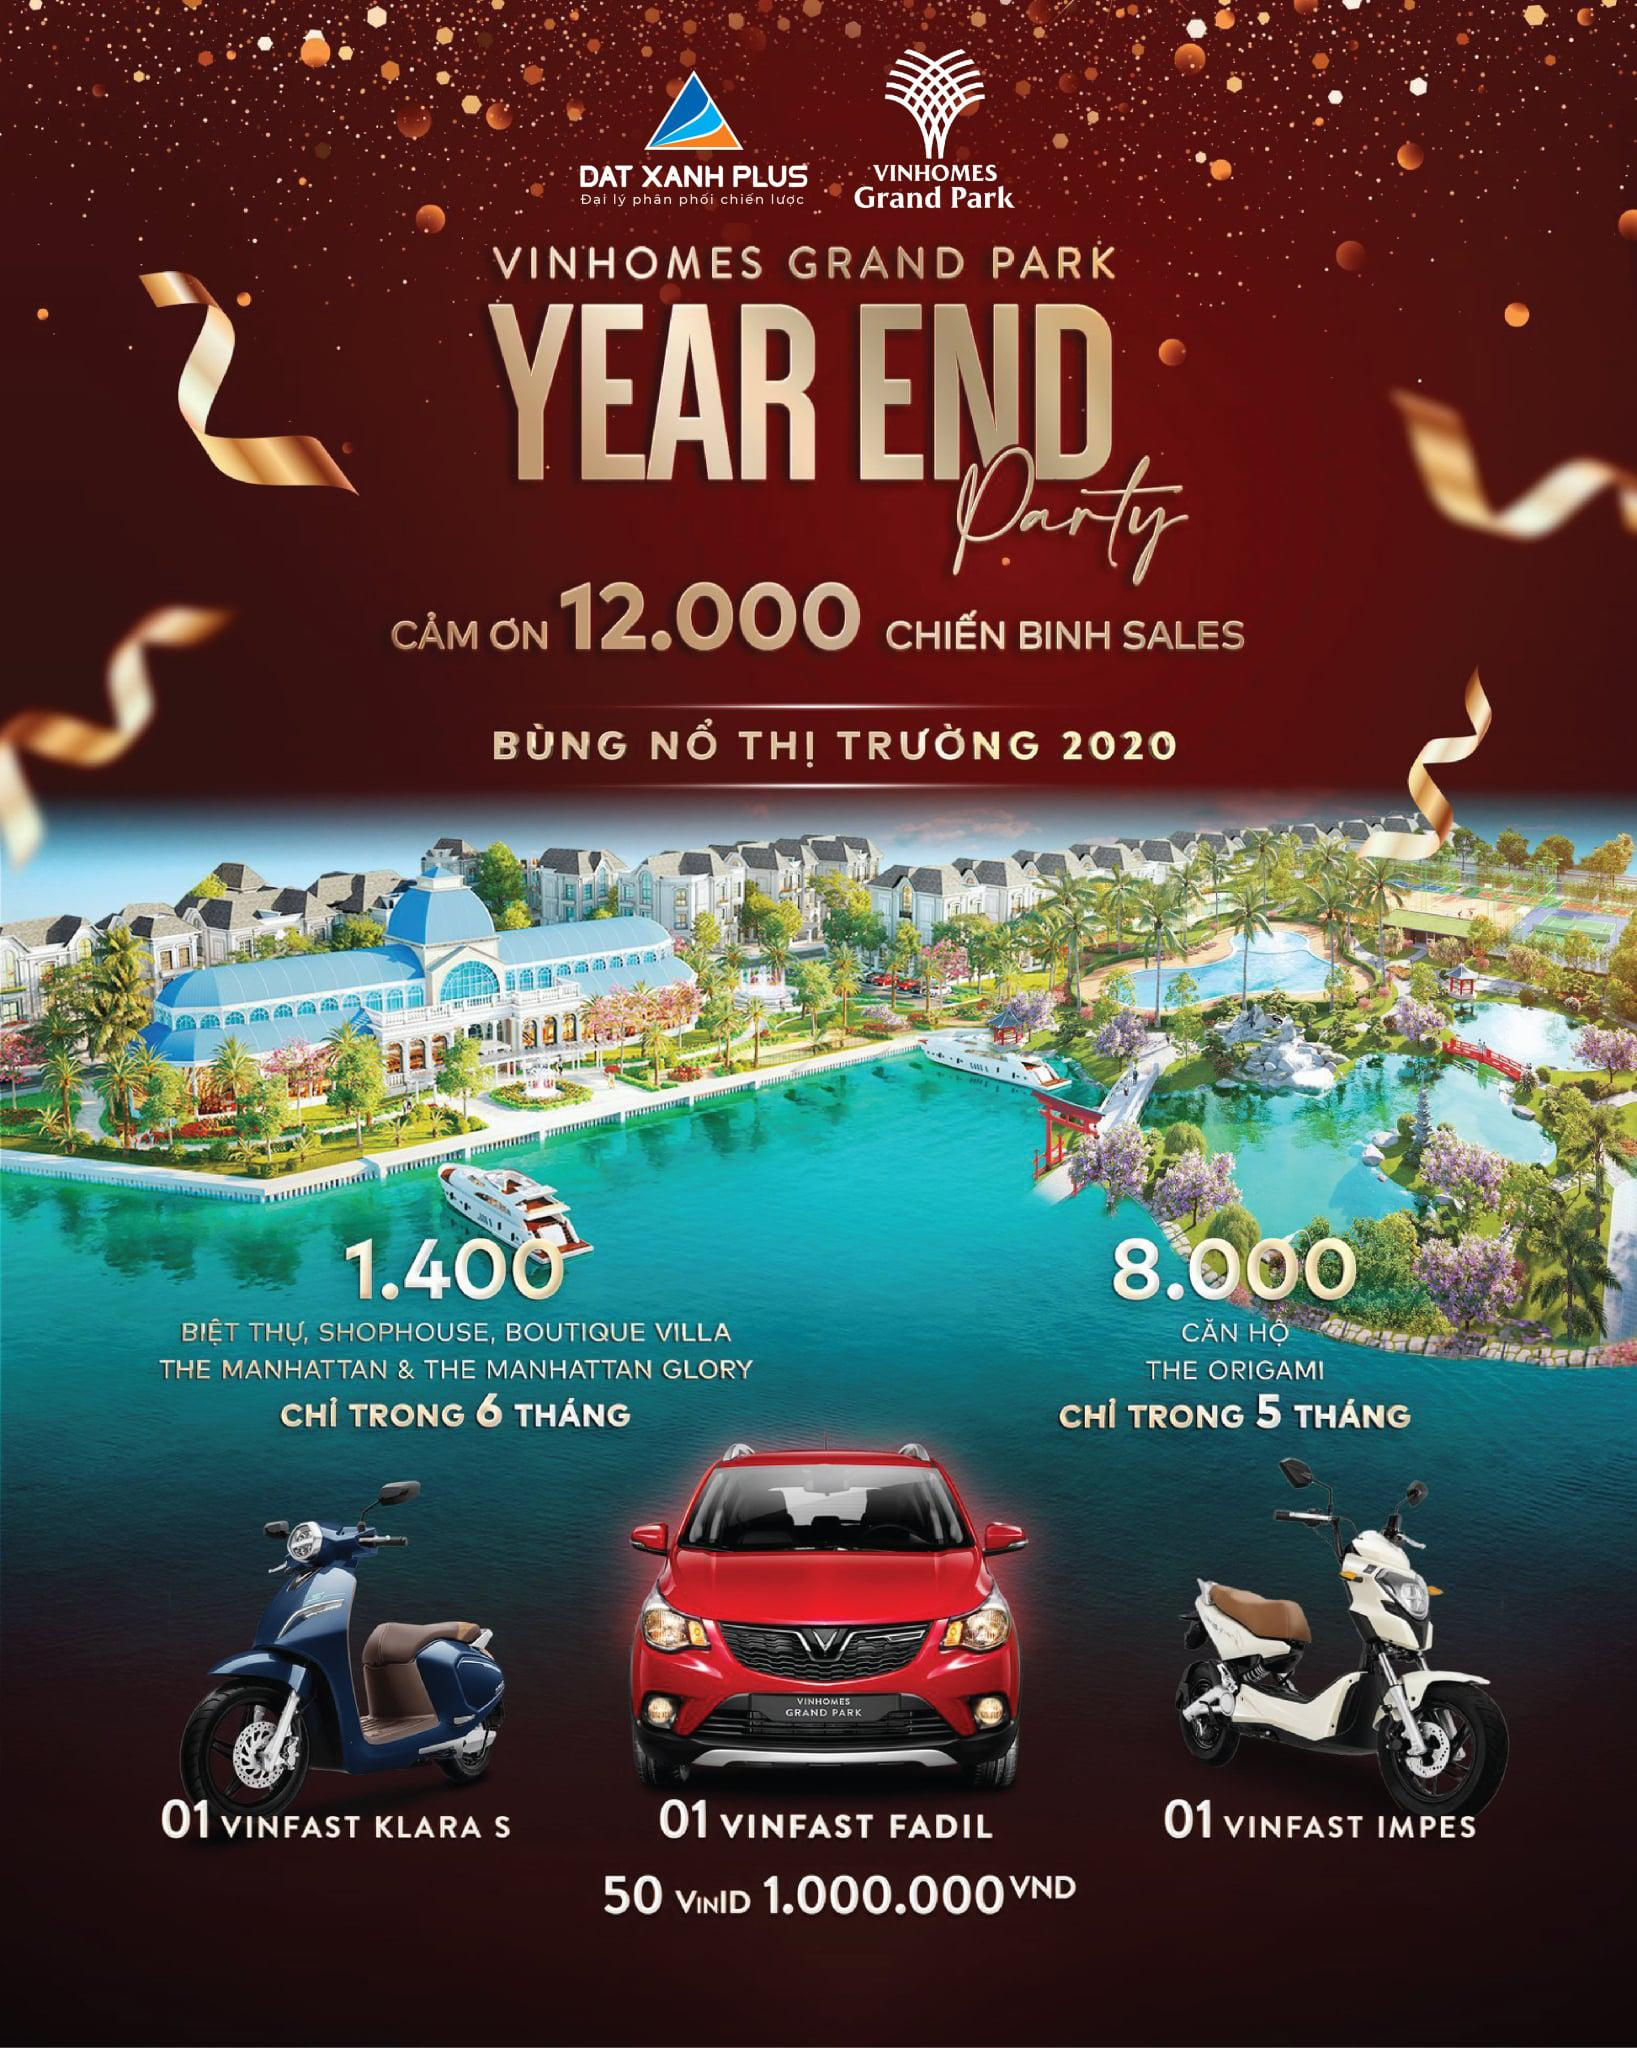 Vinhomes Grand Park - Year End Party